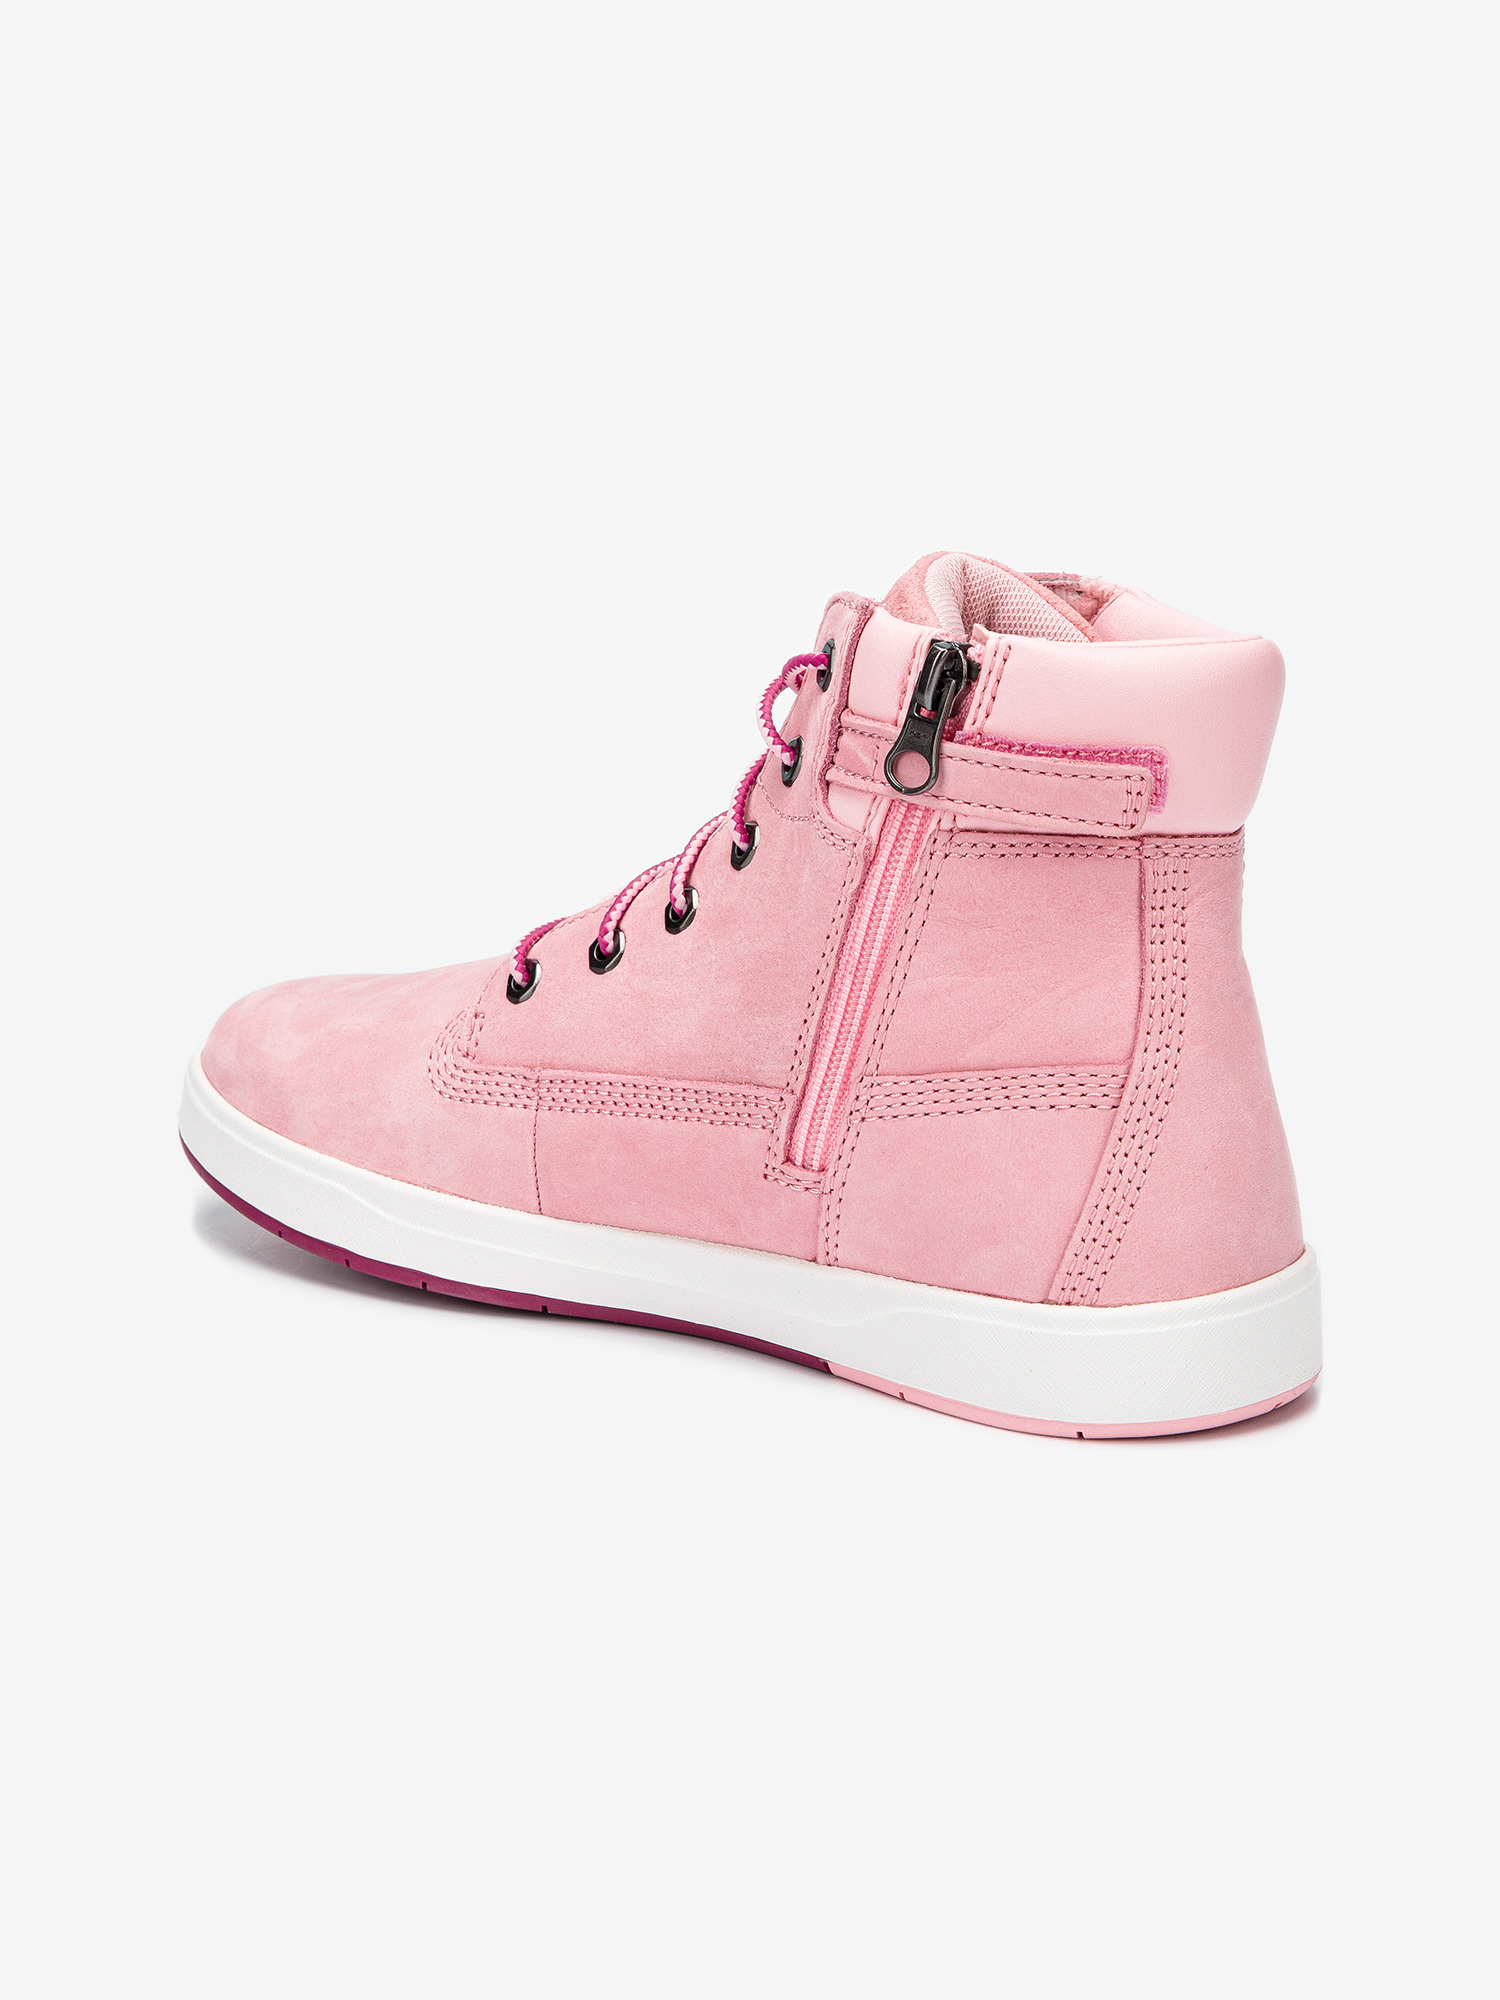 Boty Timberland Davis Square 6 Inch Prism Pink (3)